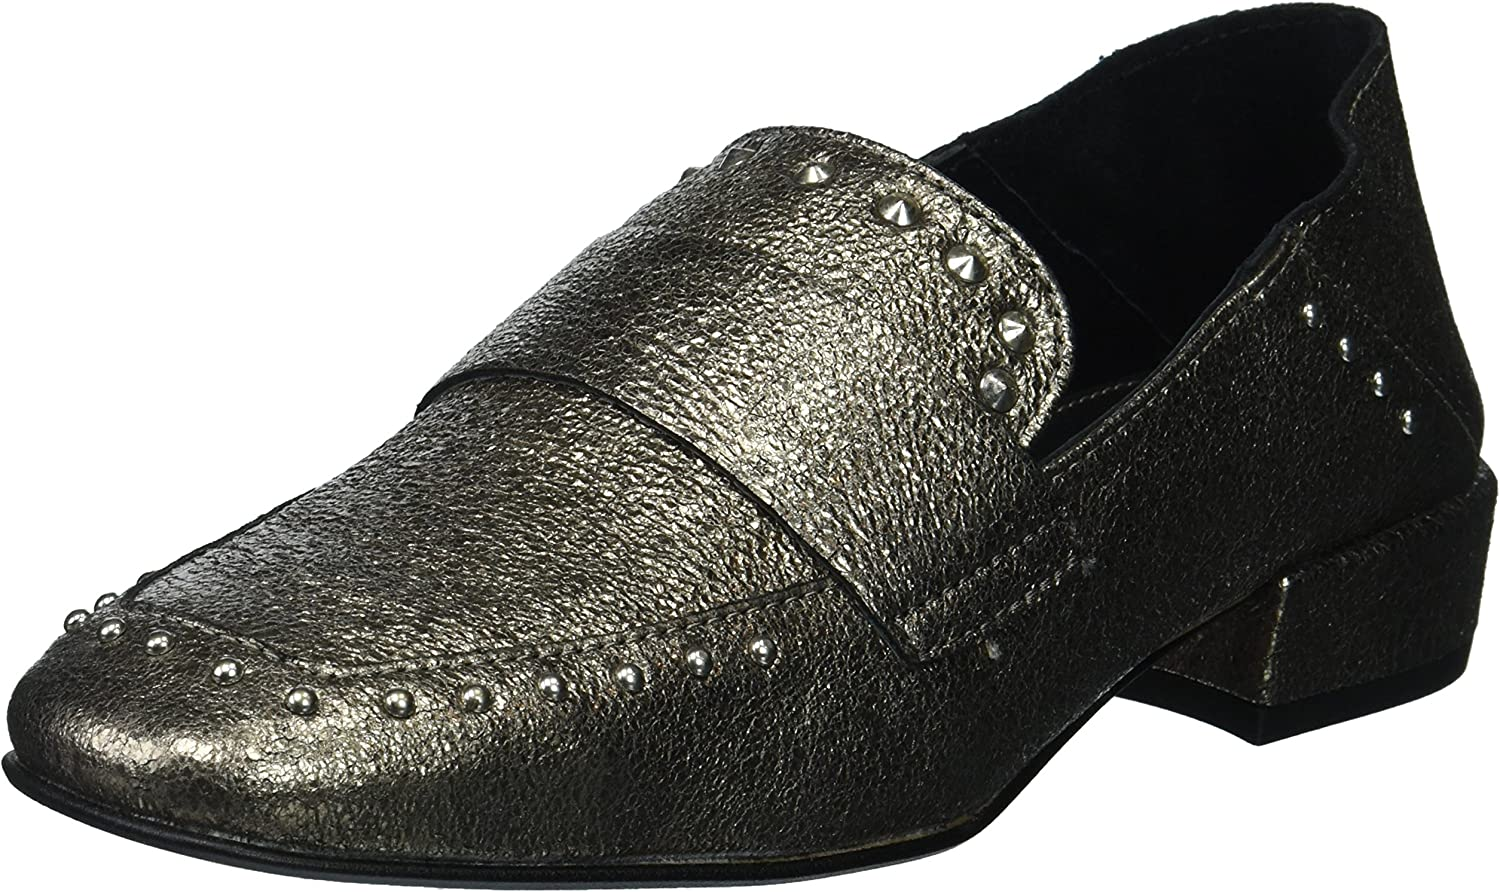 Kenneth Cole New York Womens Bowan 2 Slip on Loafer with Stud Detail Loafer Flat